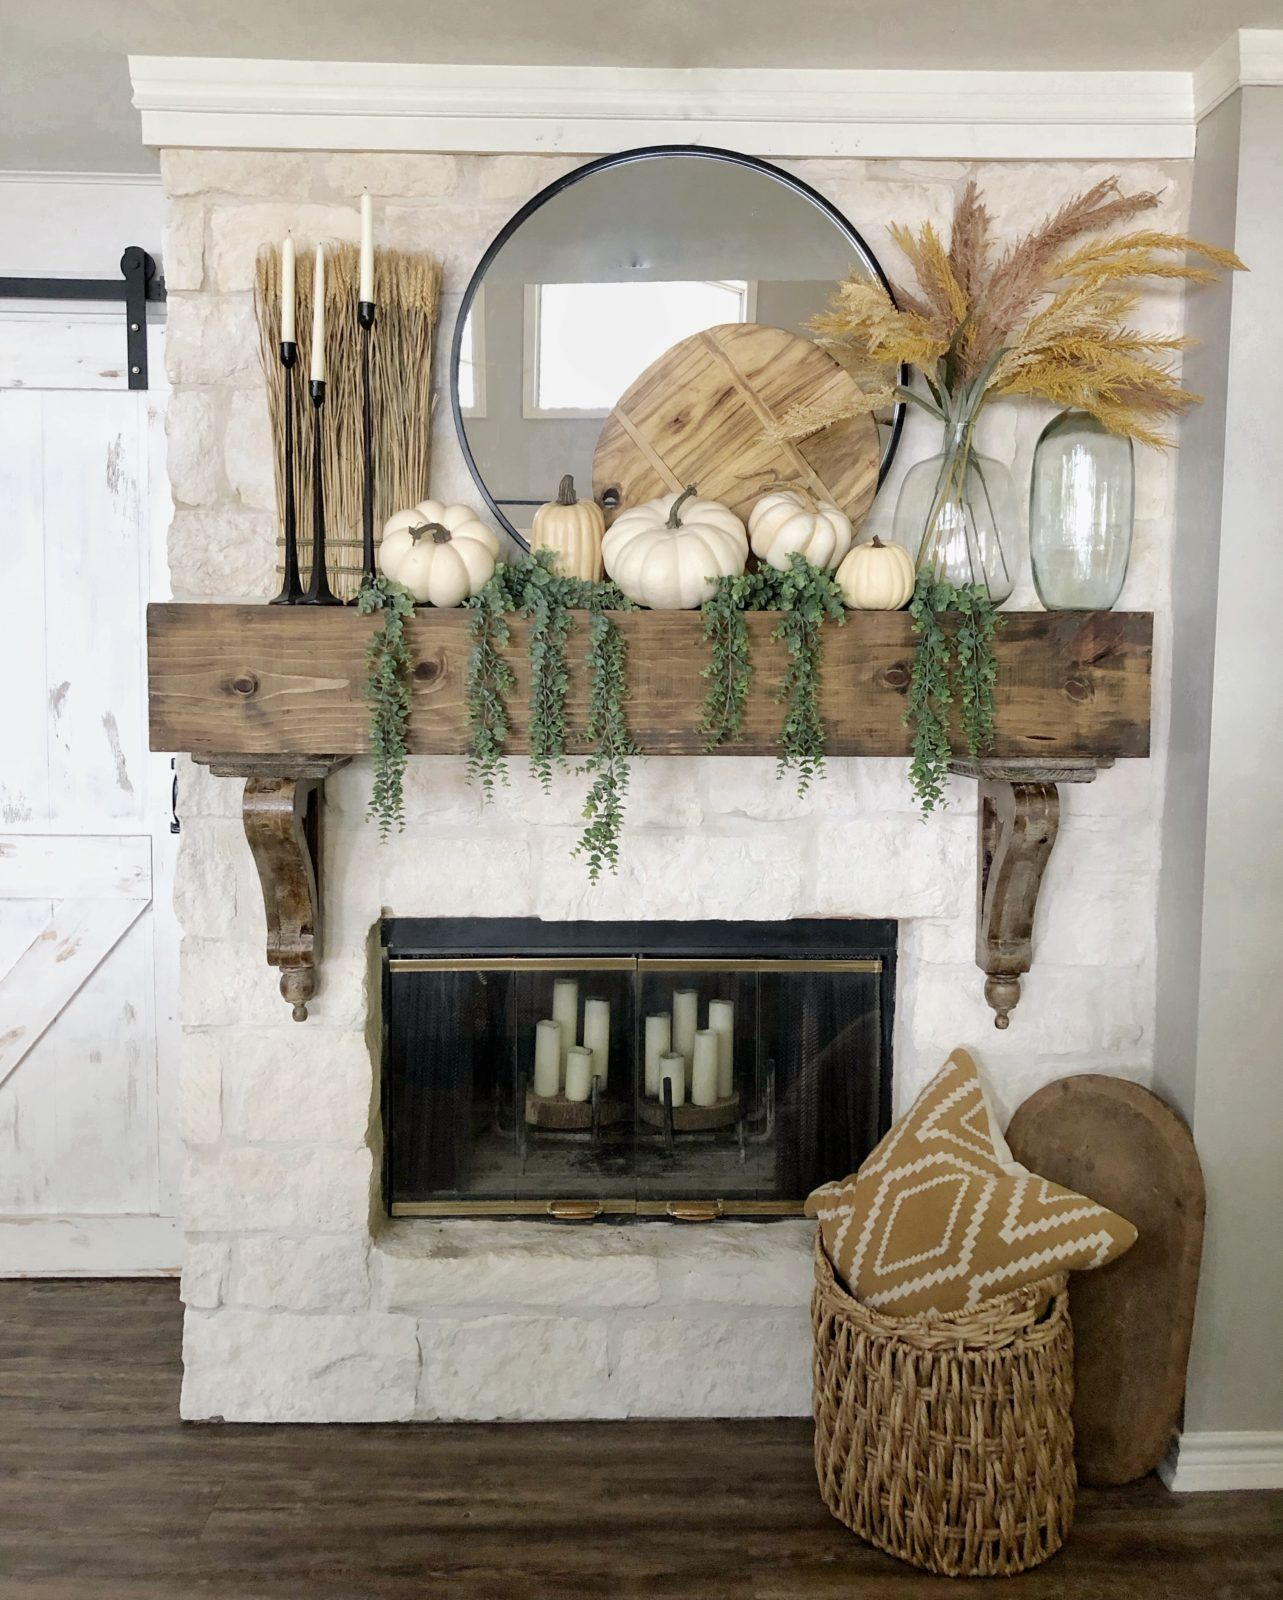 Fall Decor Home Tour Inspiration And Ideas * Hip & Humble Style . fall mantel inspirations, how to create a simple fall mantel, fall mantel ideas, beautiful fall mantel ideas, #hipandhumblestyle #falldecor #falldecorating #fallmantel